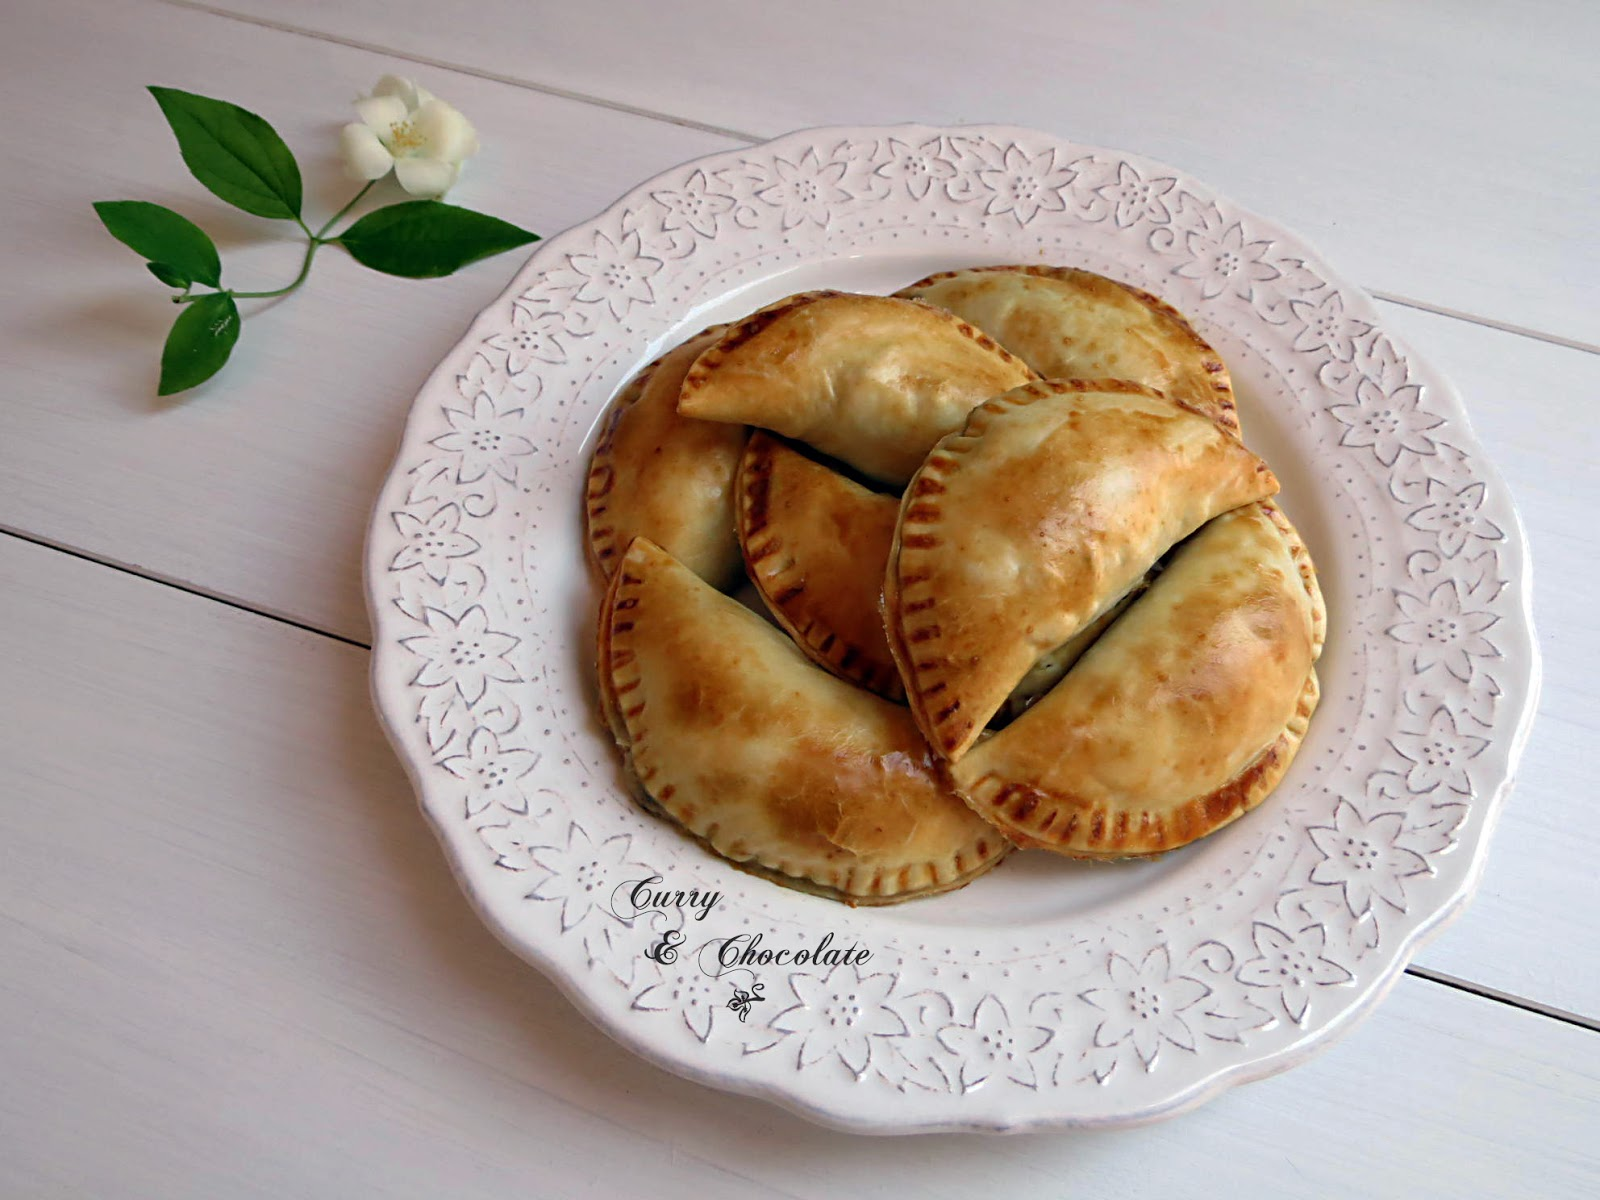 Empanadillas de setas y espárragos - Mushroom and asparagus turnovers